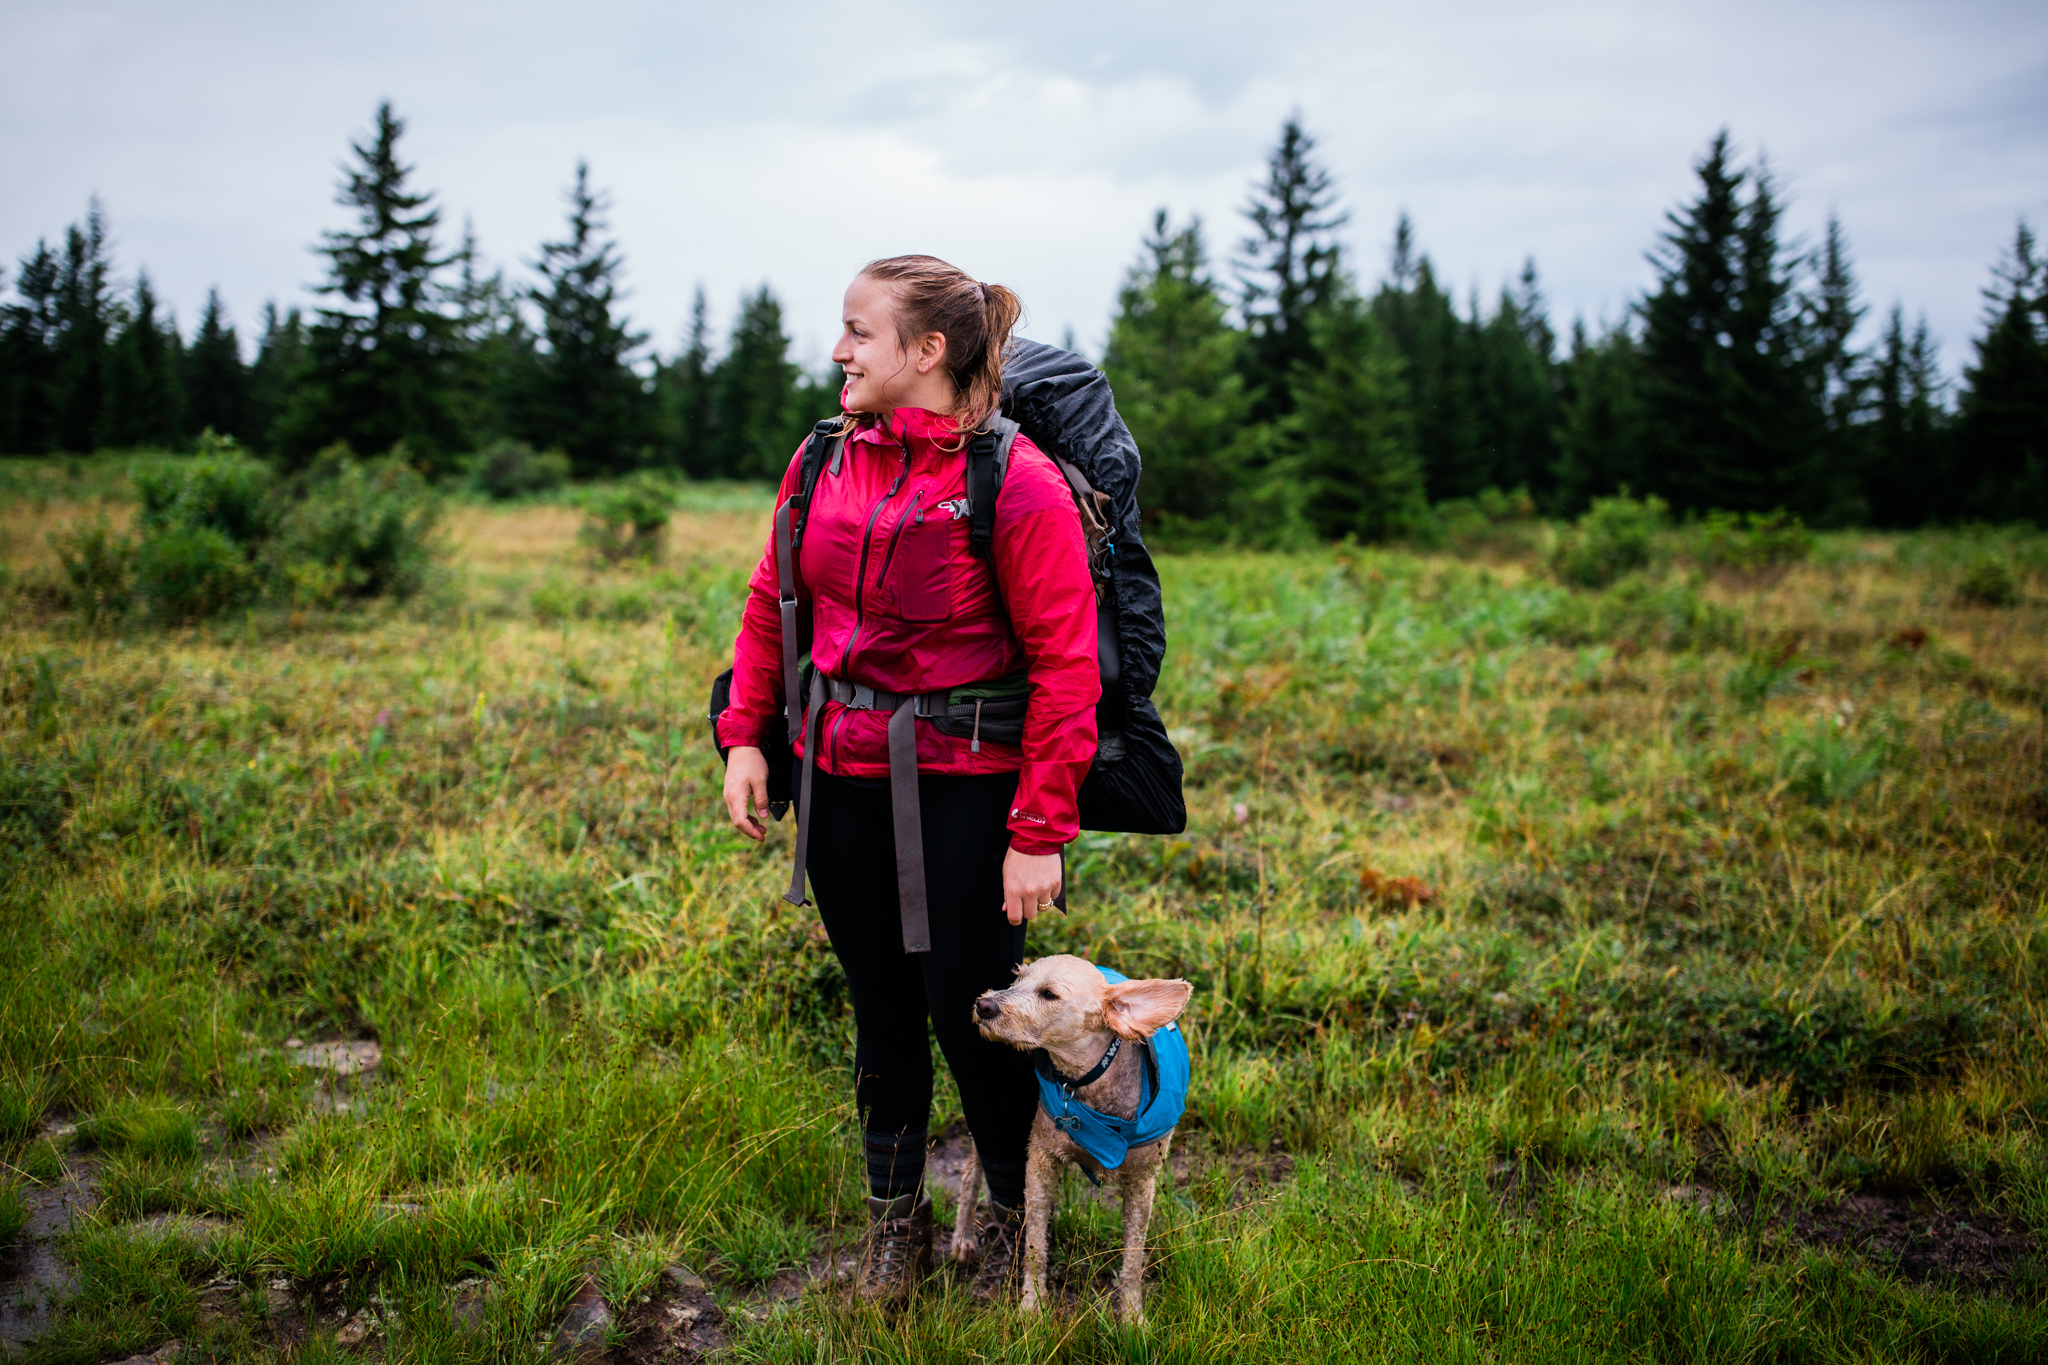 Women who hike, West Virginia adventure photographer, Dolly Sods Hiking, Hiking with dogs